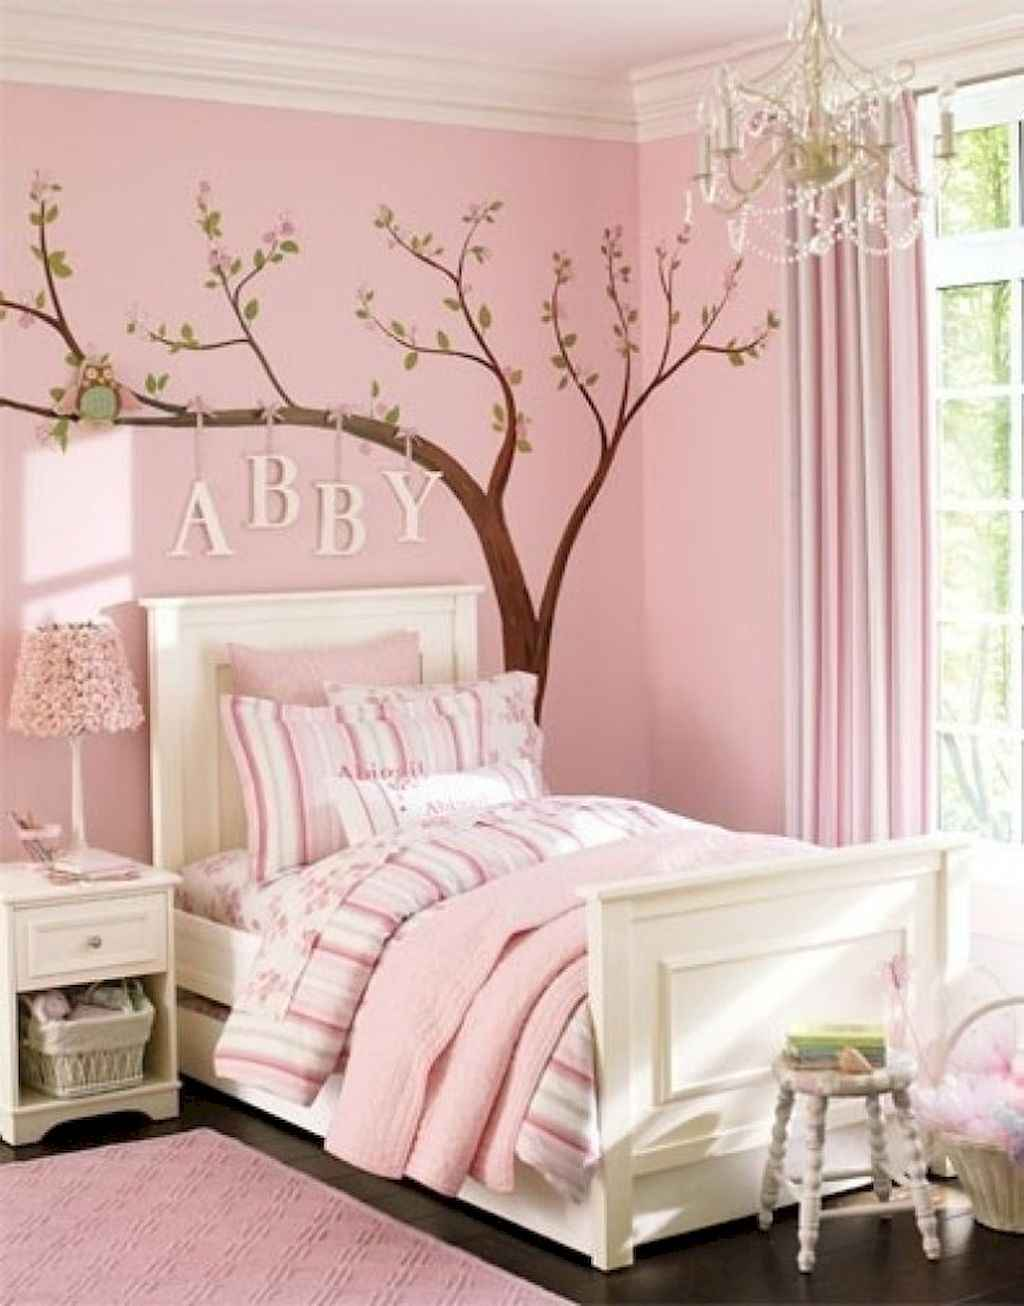 Awesome bedroom decoration ideas (52)